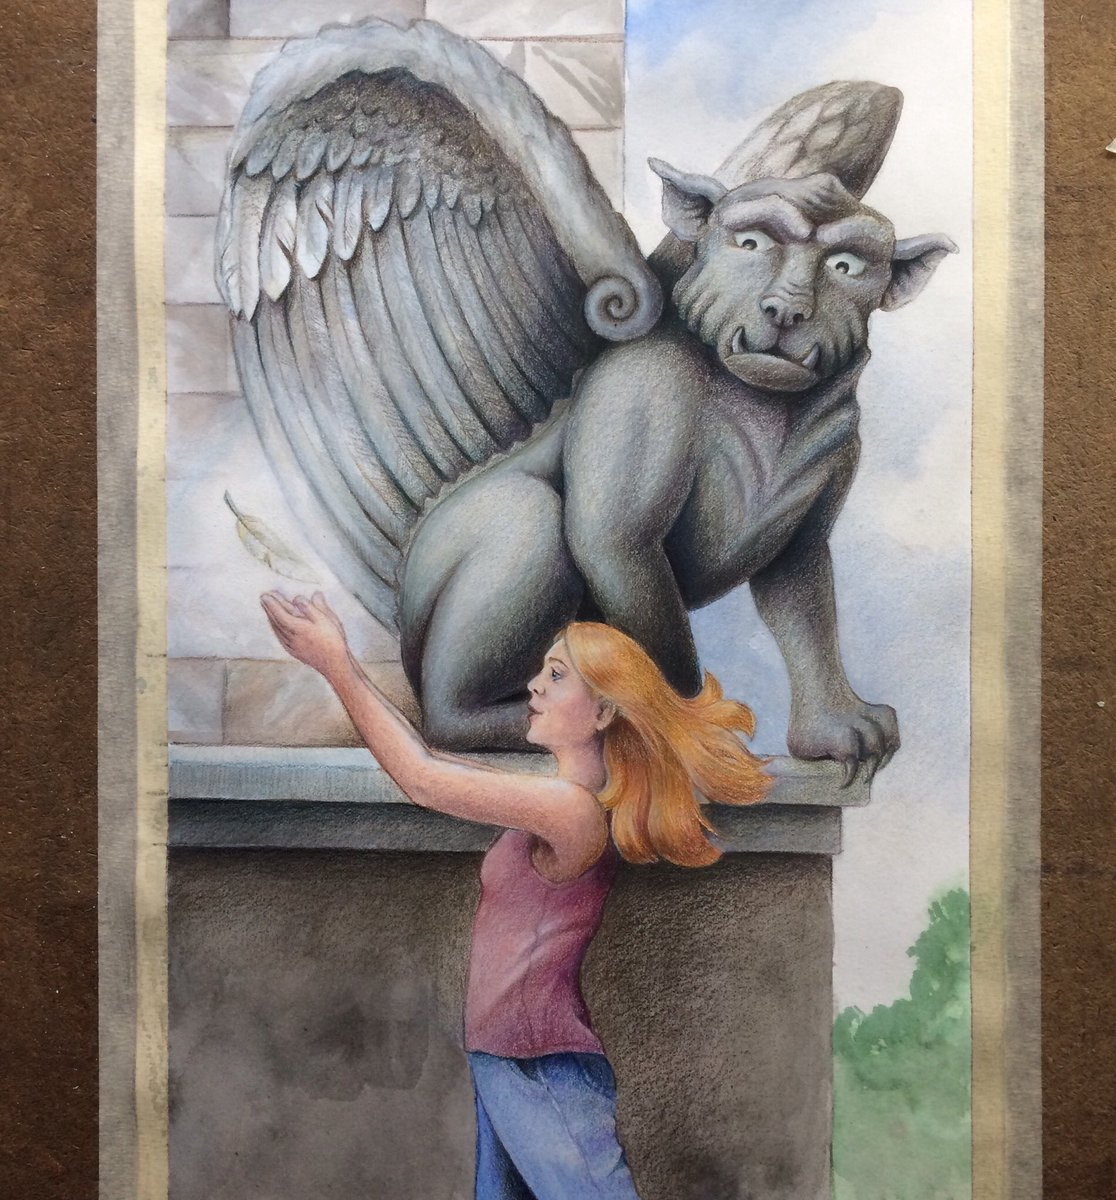 Hoping to finally finish this one today. Just a bit more #colouredpencil layering to go! #workinprogress #gargoyle #coloredpencil #wip #art #artist #create #creative #feather #magic #ink #watercolor #wings #stone #artofinstagram #magical #magicalrealism